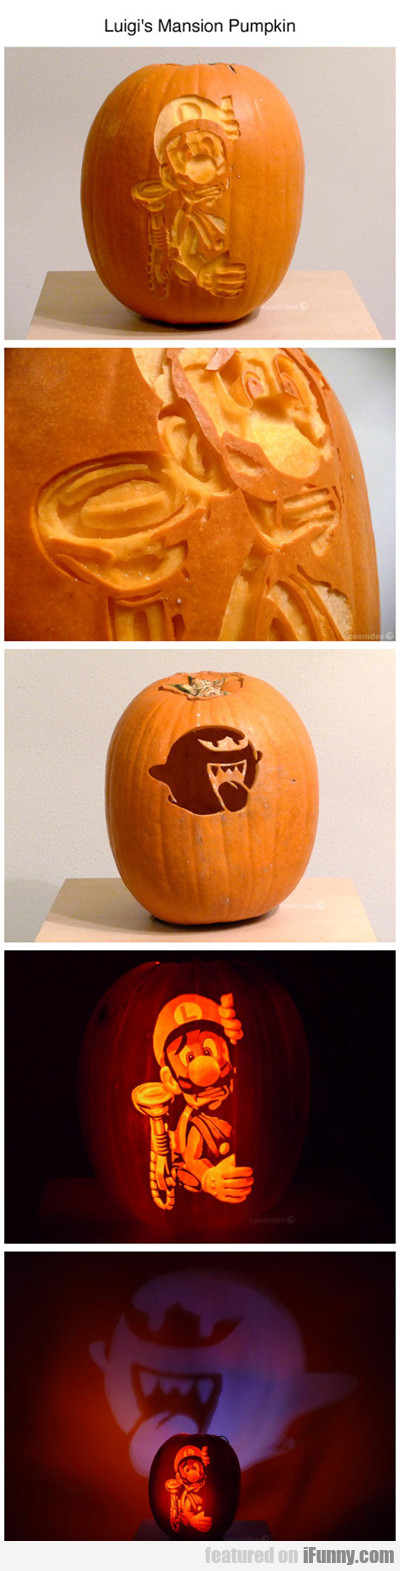 Luigi's Mansion Pumpkin...